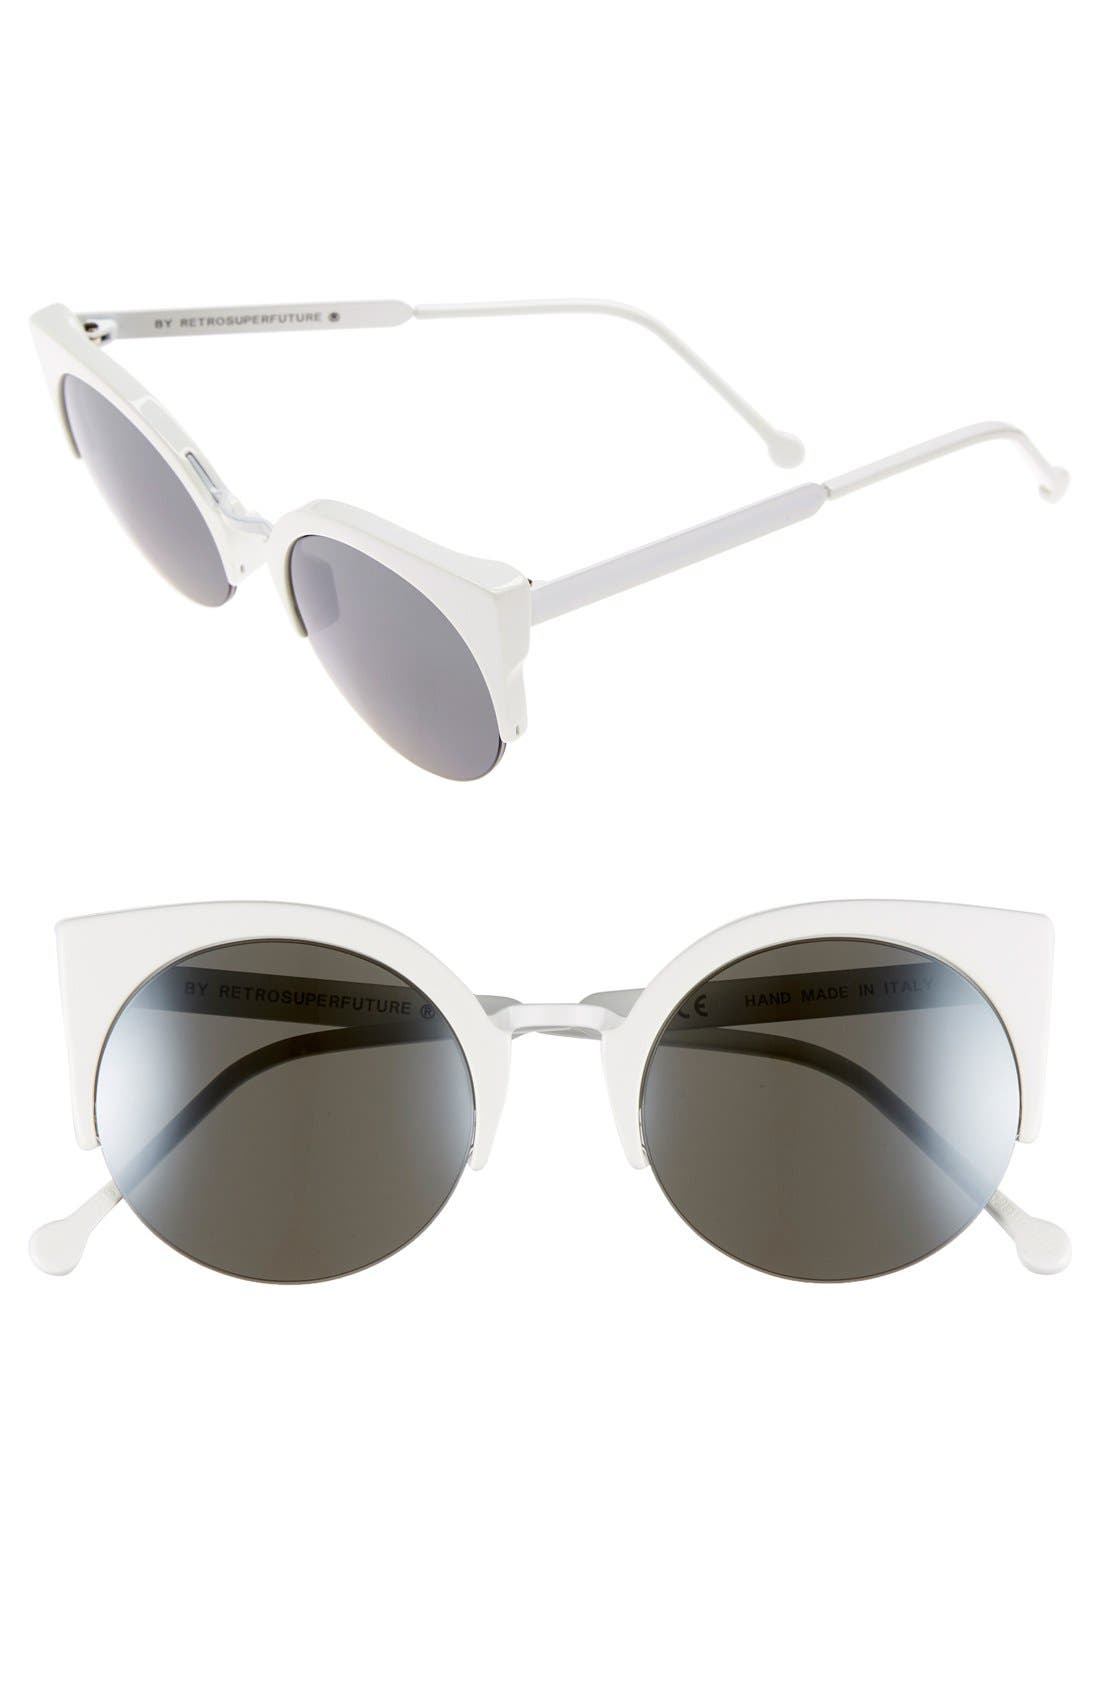 Alternate Image 1 Selected - SUPER by RETROSUPERFUTURE® 'Lucia Francis' 51mm Sunglasses